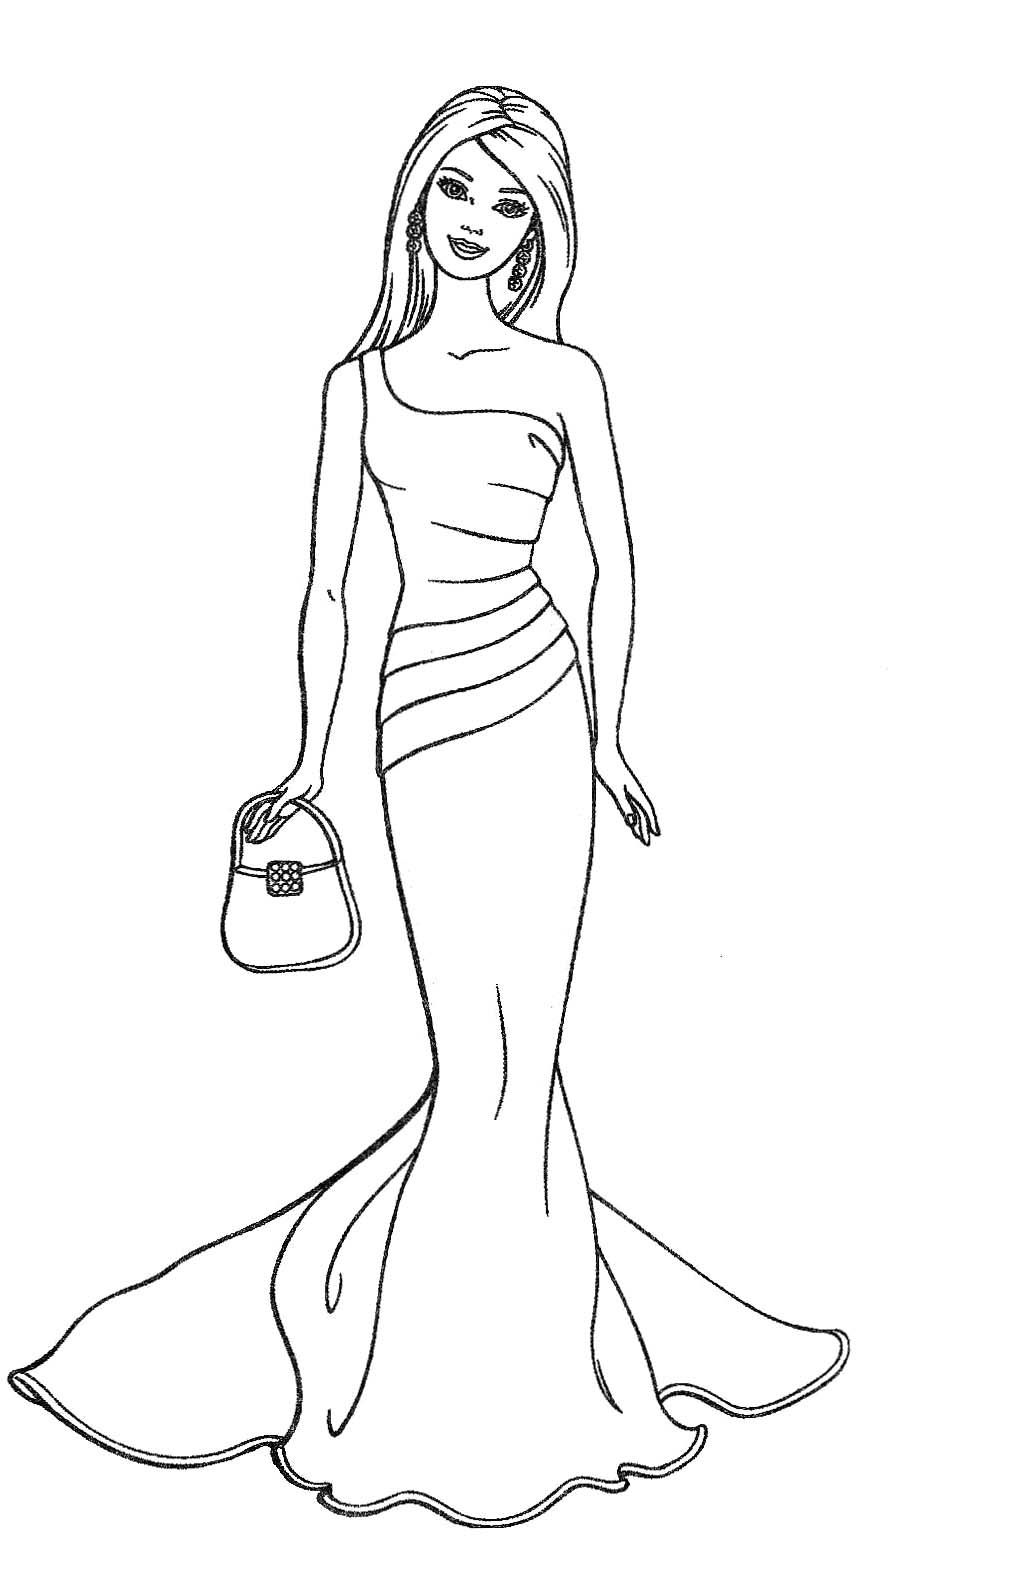 fashion barbie coloring pages - barbie fashion coloring page 01 spa day party